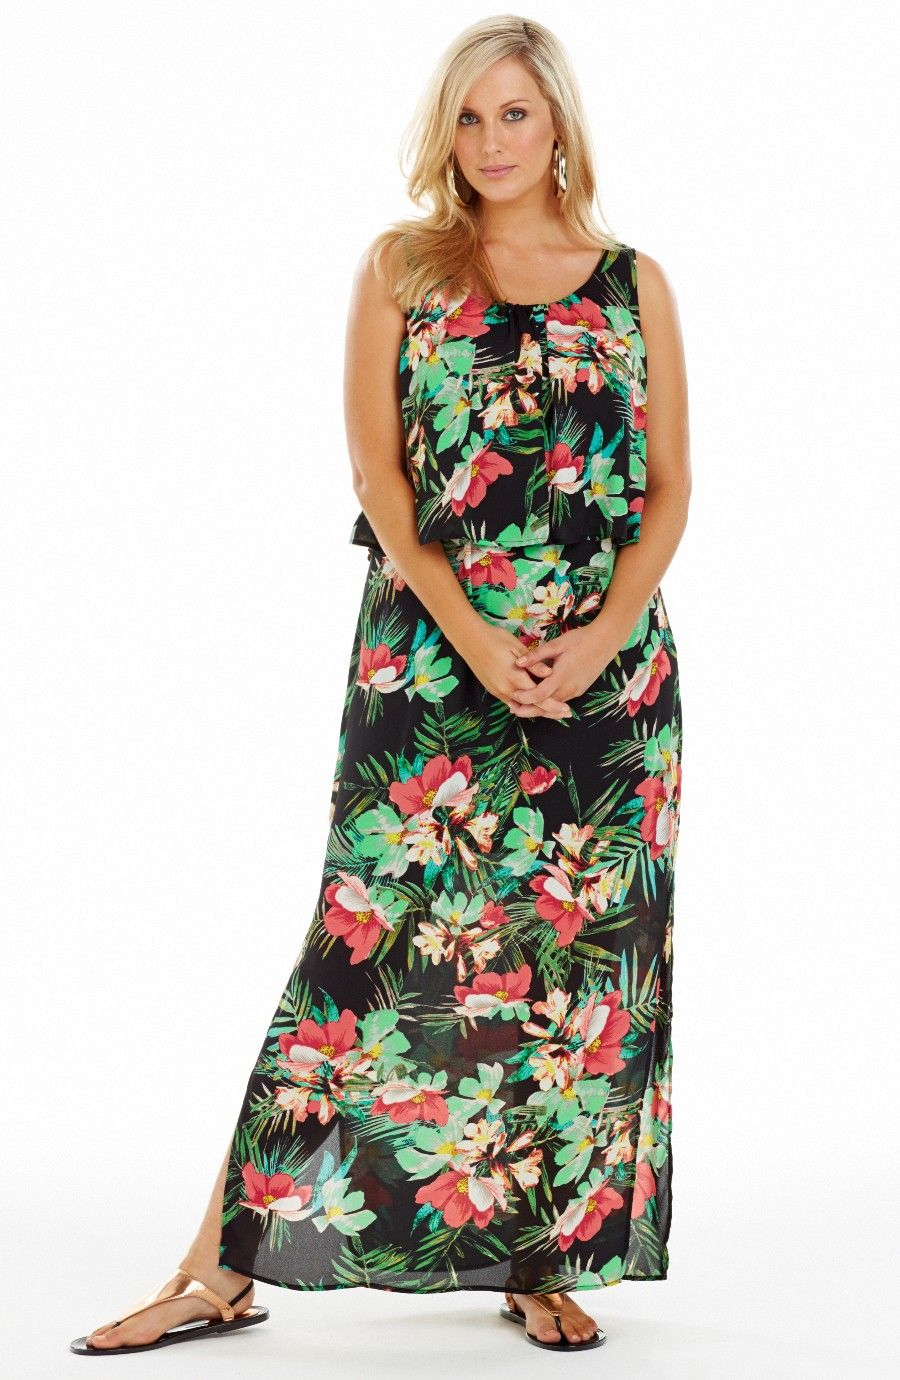 0ddd996691325 Bodice Overlay Maxi Dress   Tropical Style No: D2196 Printed Georgette maxi  Dress. This Summery tropical print maxi has a a flowy overlayer on the  upper ...